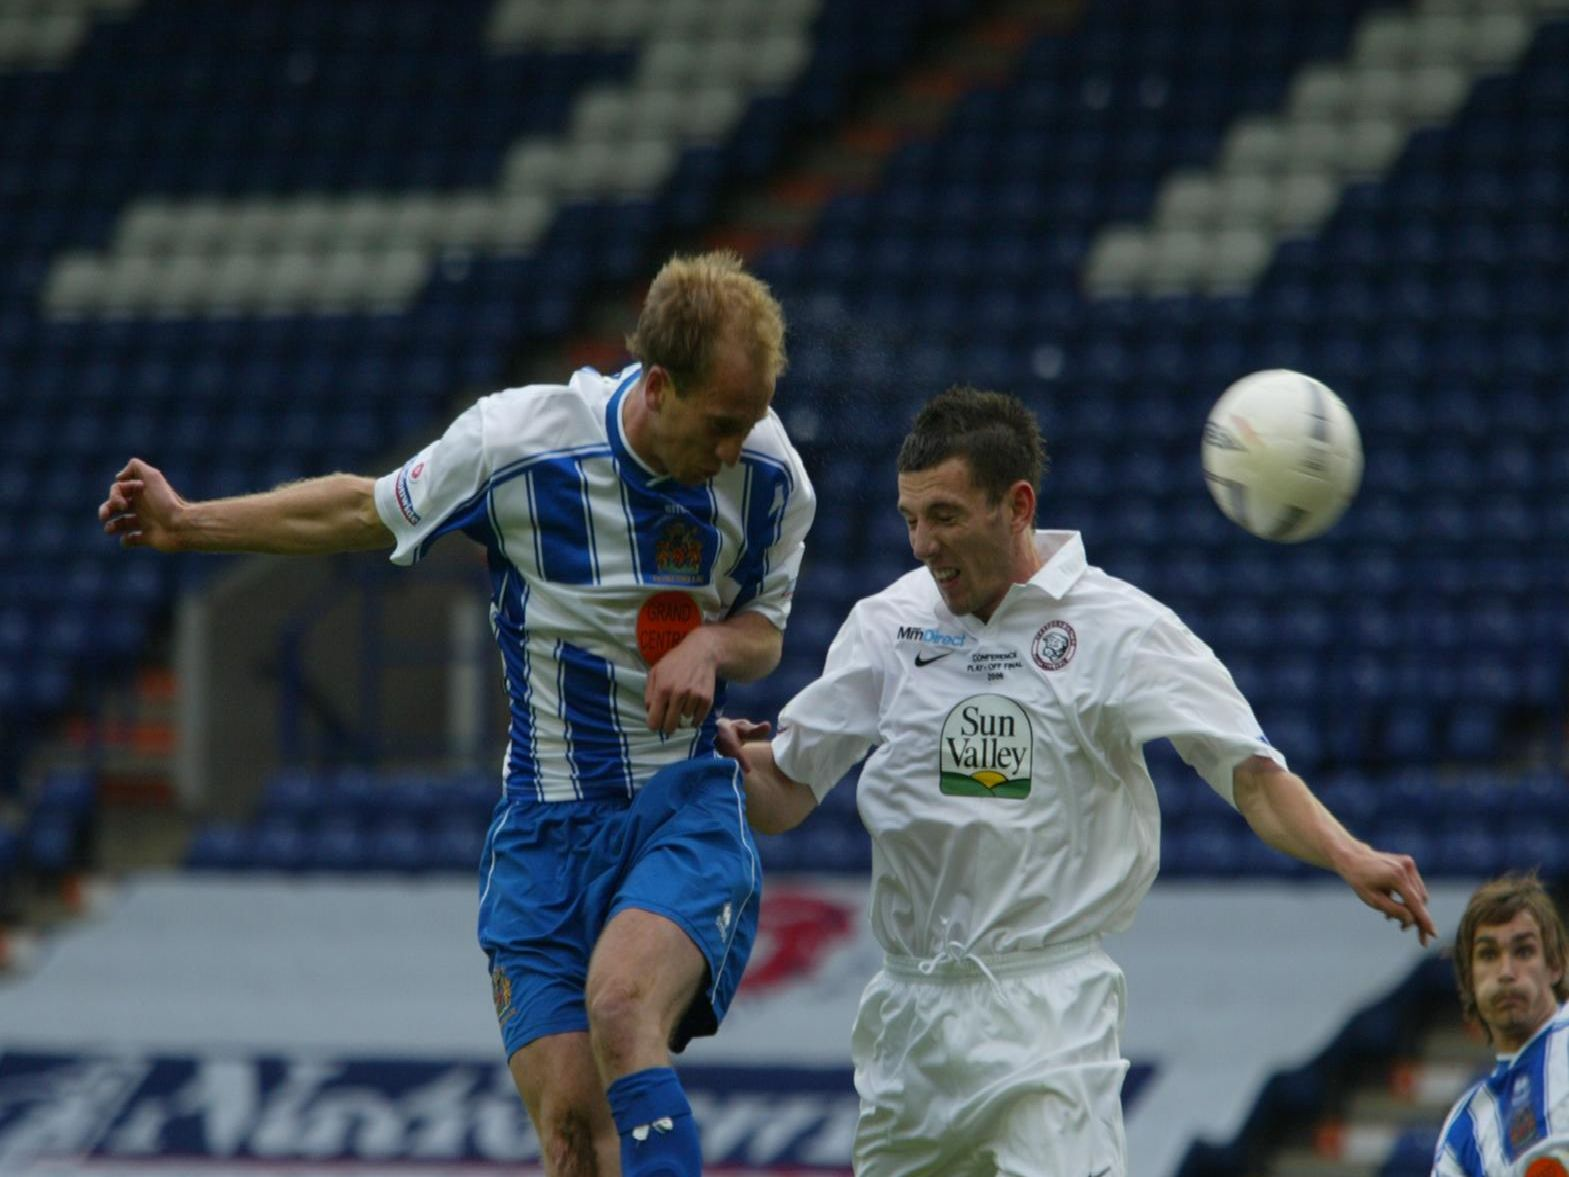 Halifax v Hereford, Conference play-off final, May 2006.